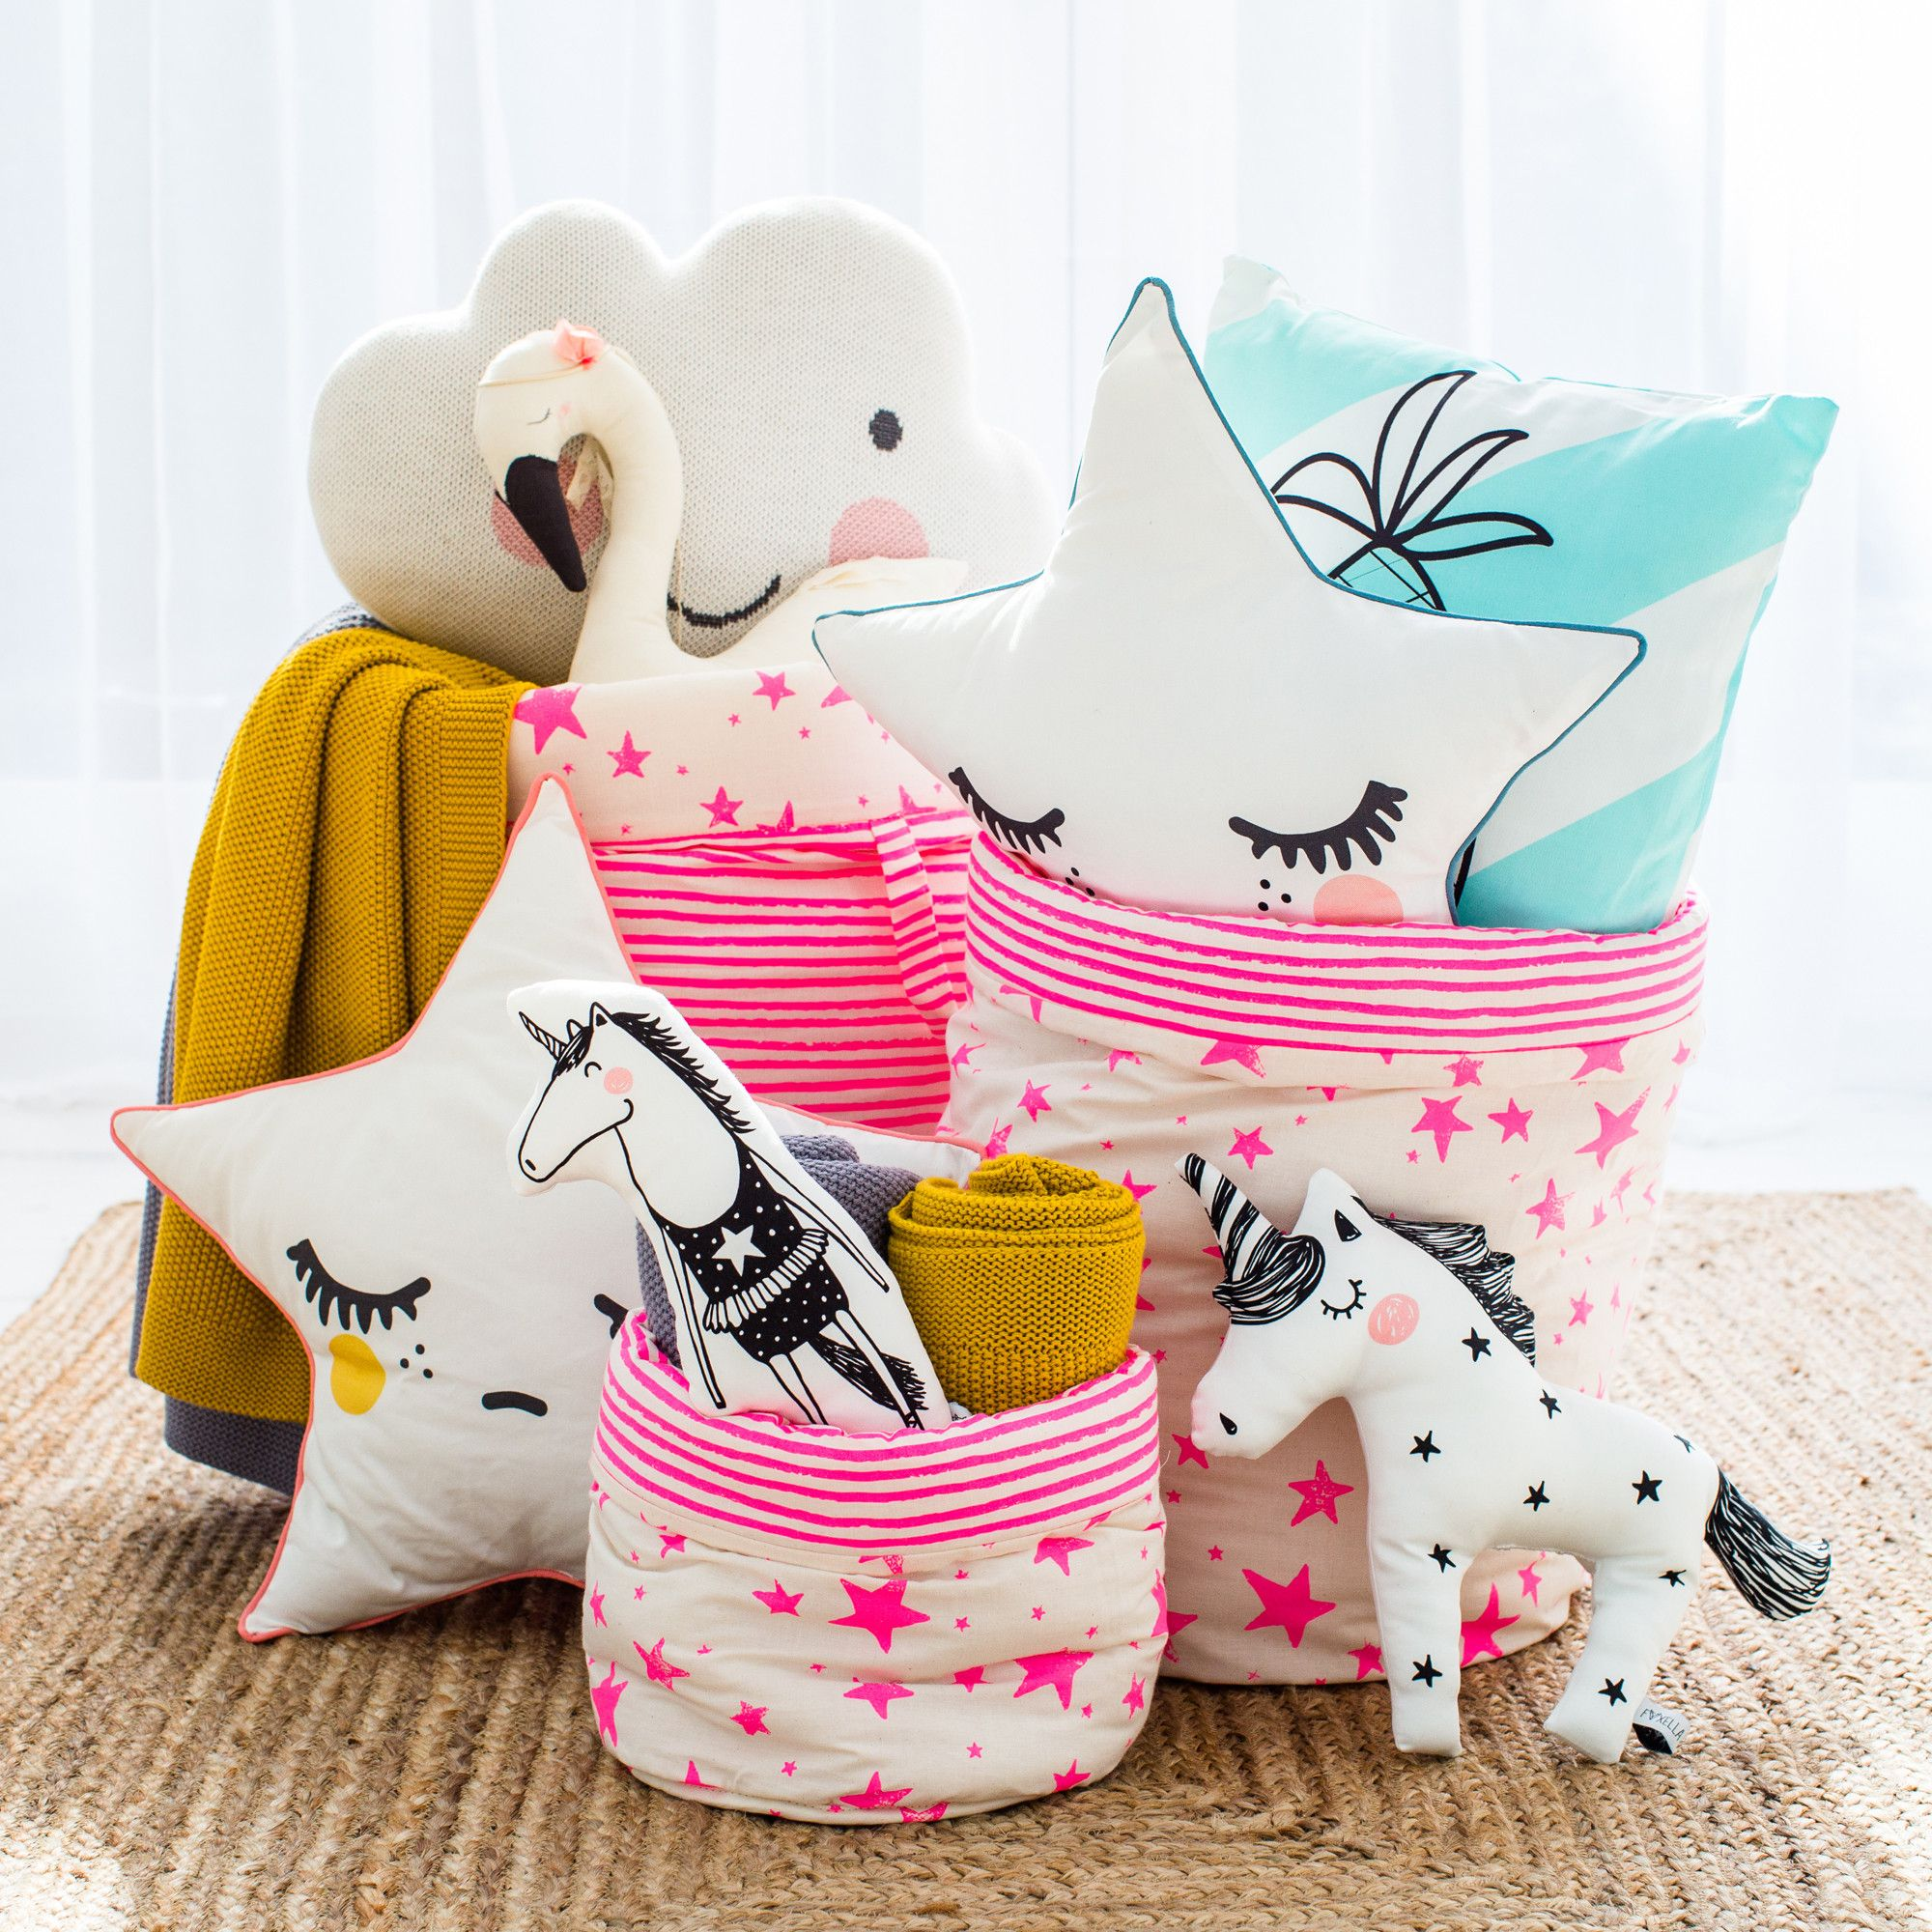 Cushions And Storage Available At Bobby Rabbit Styling